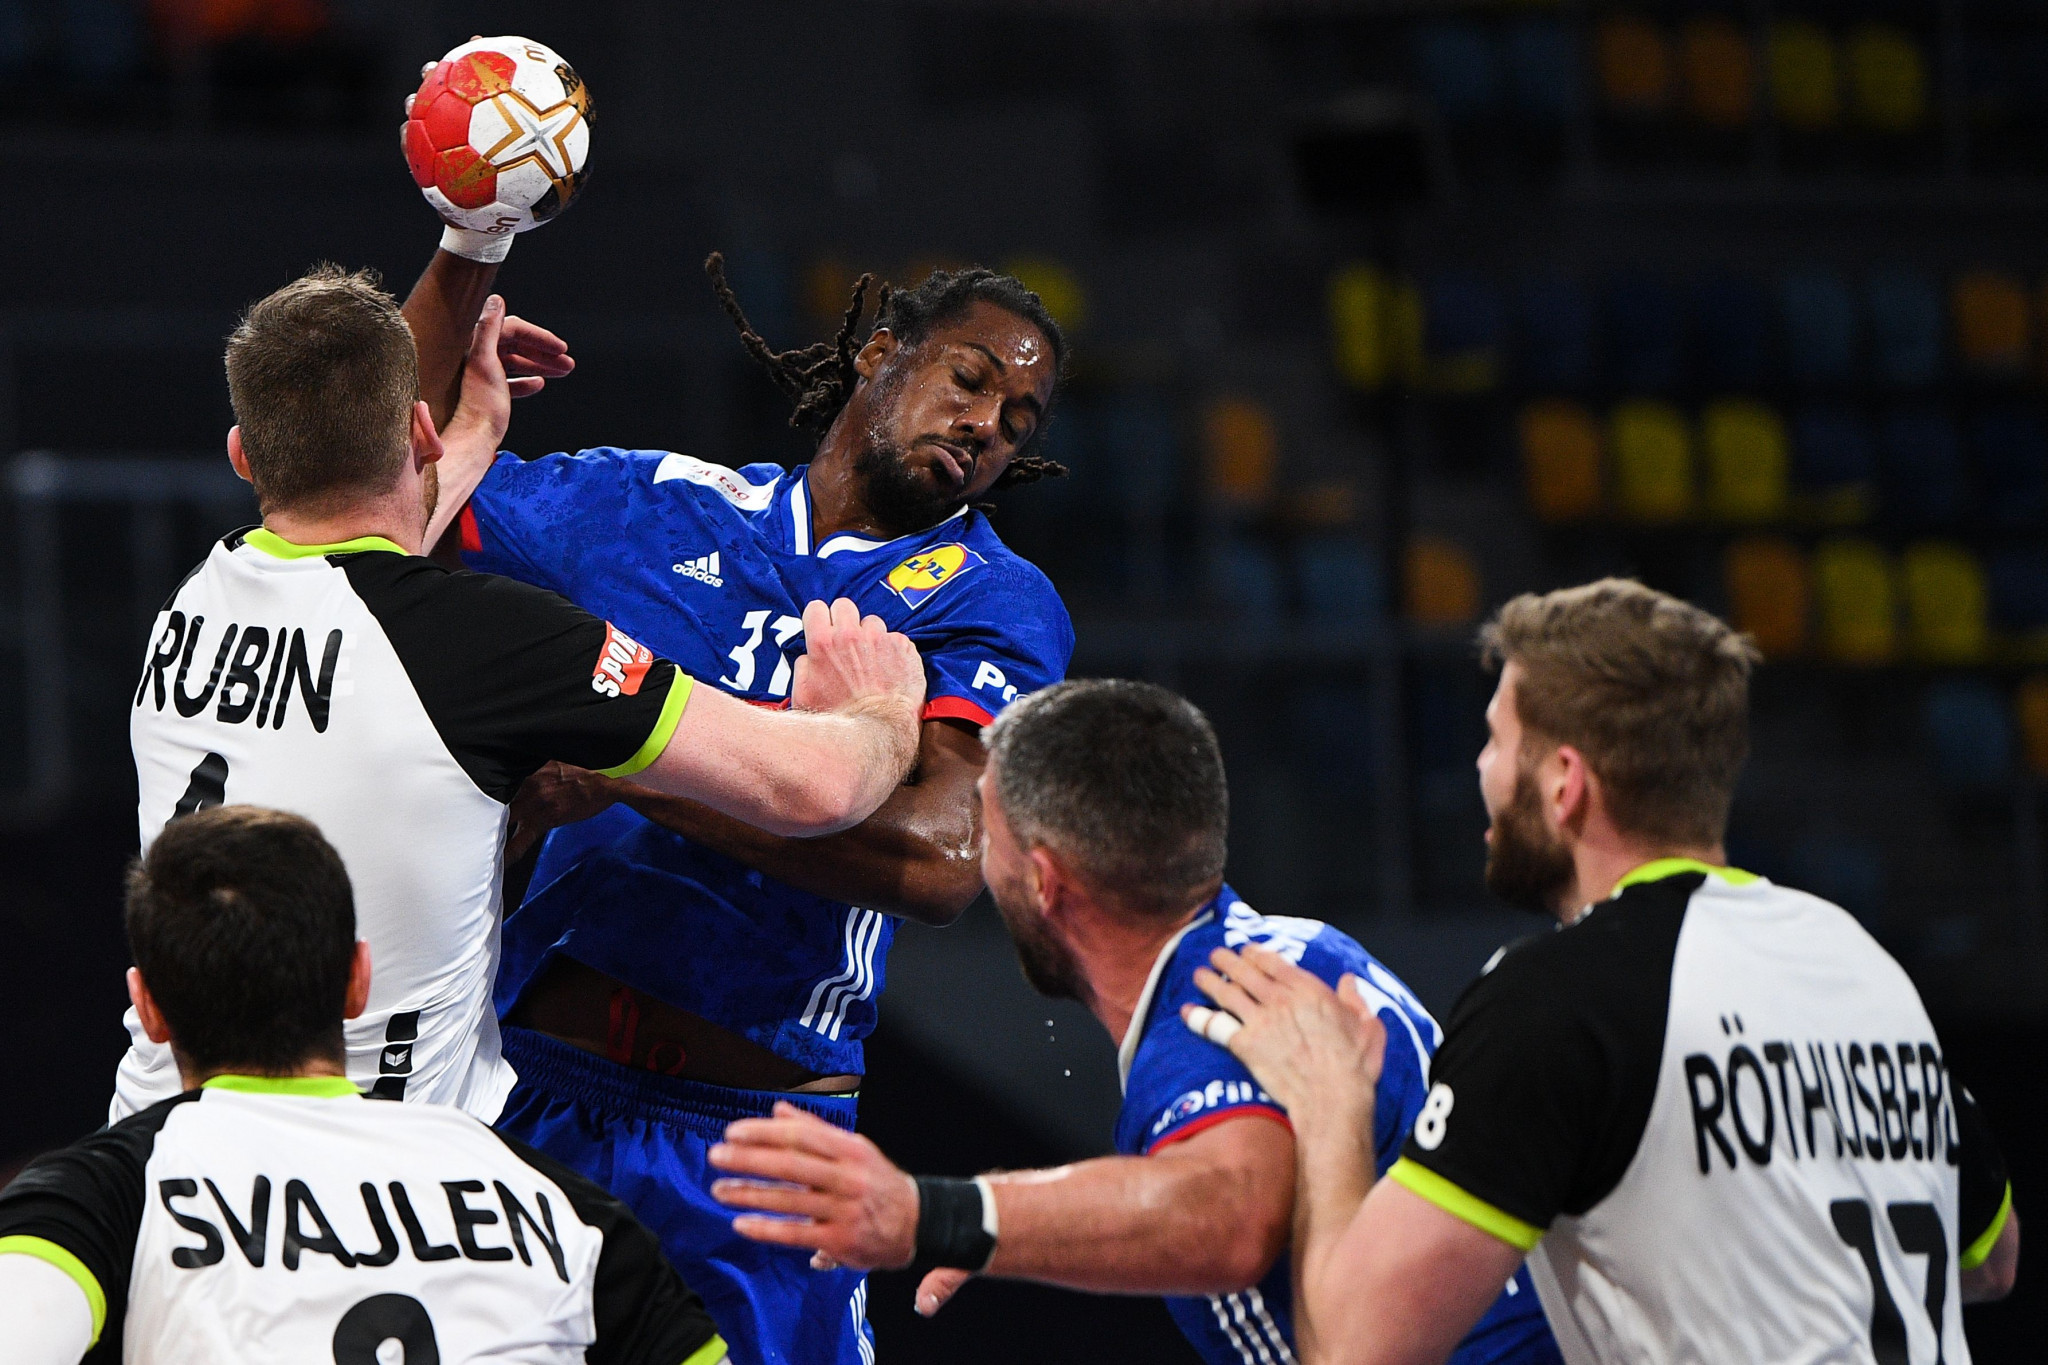 France qualified for the main round of the IHF World Men's Handball Championship after winning all three of their group matches ©Getty Images